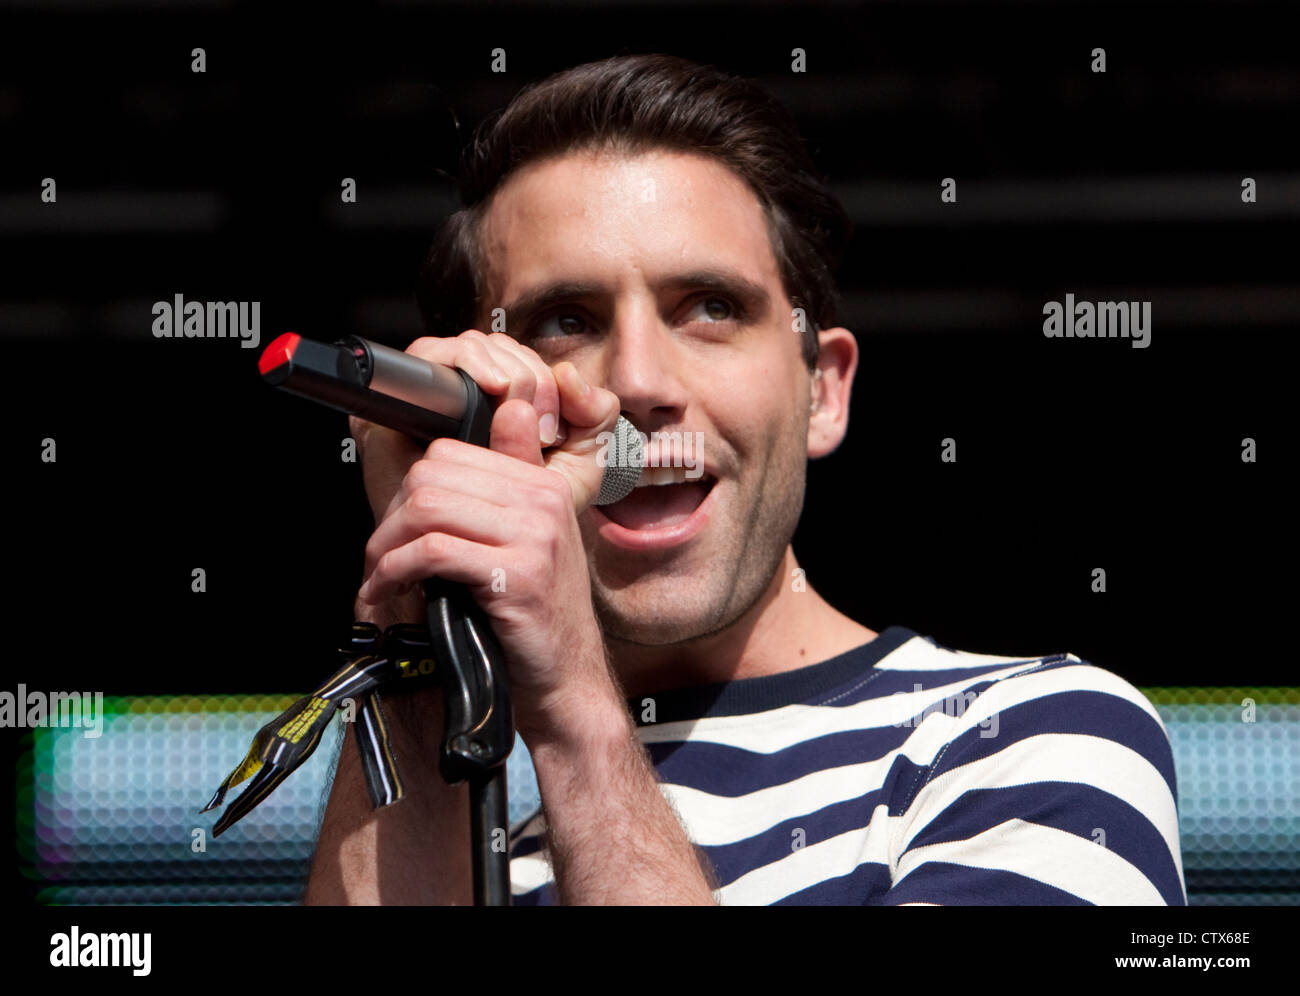 Mika on stage at Lovebox festival, Victoria Park, London June 2012 - Stock Image